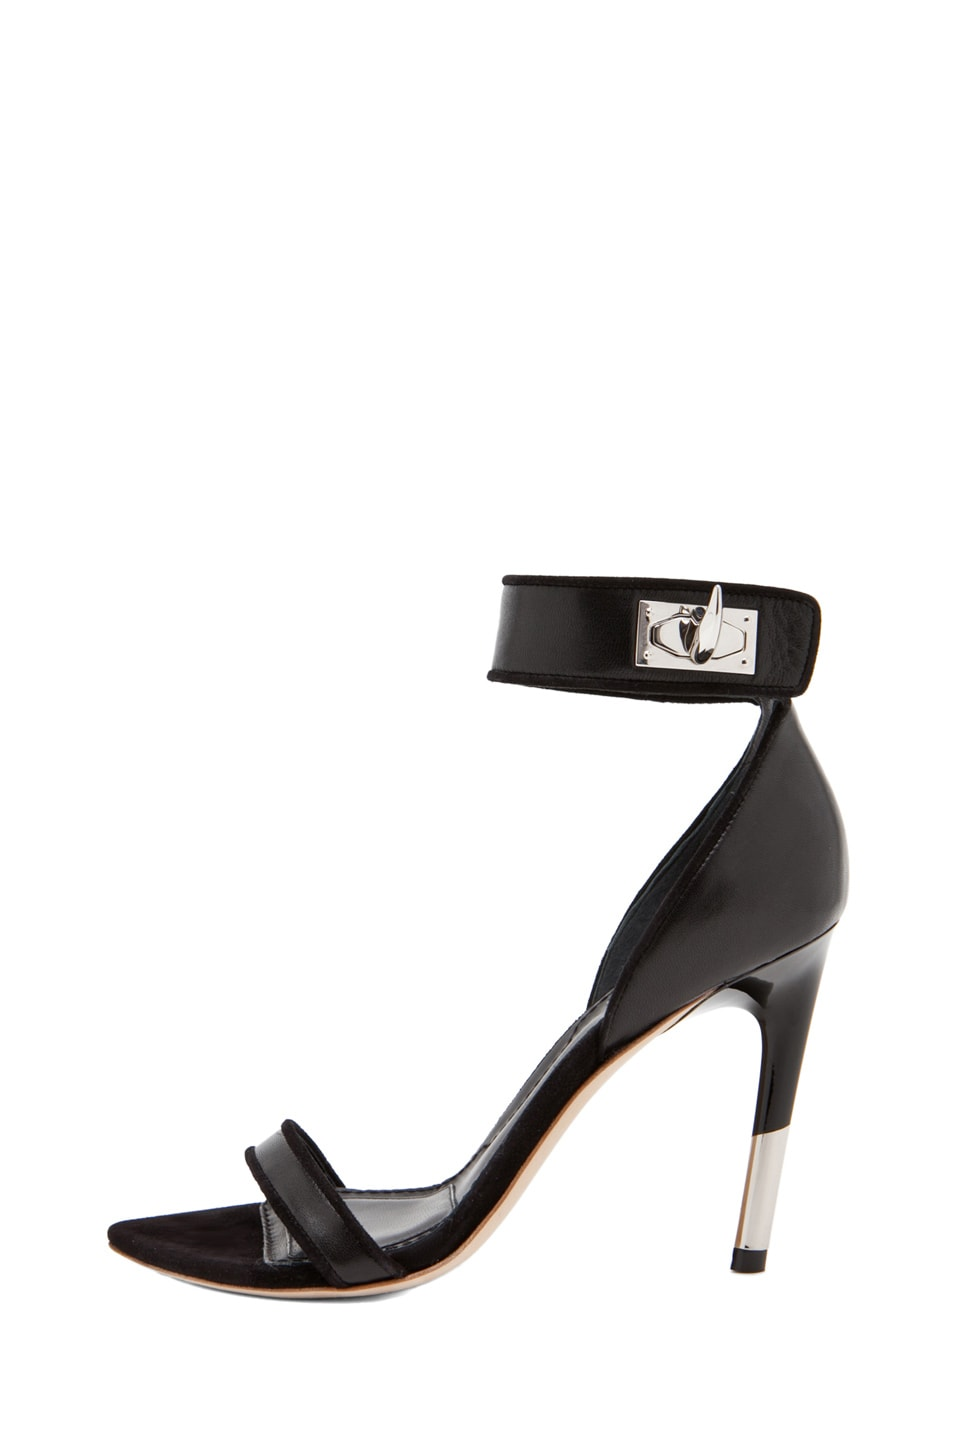 Image 1 of GIVENCHY Guerra Nappa Leather Heel in Black